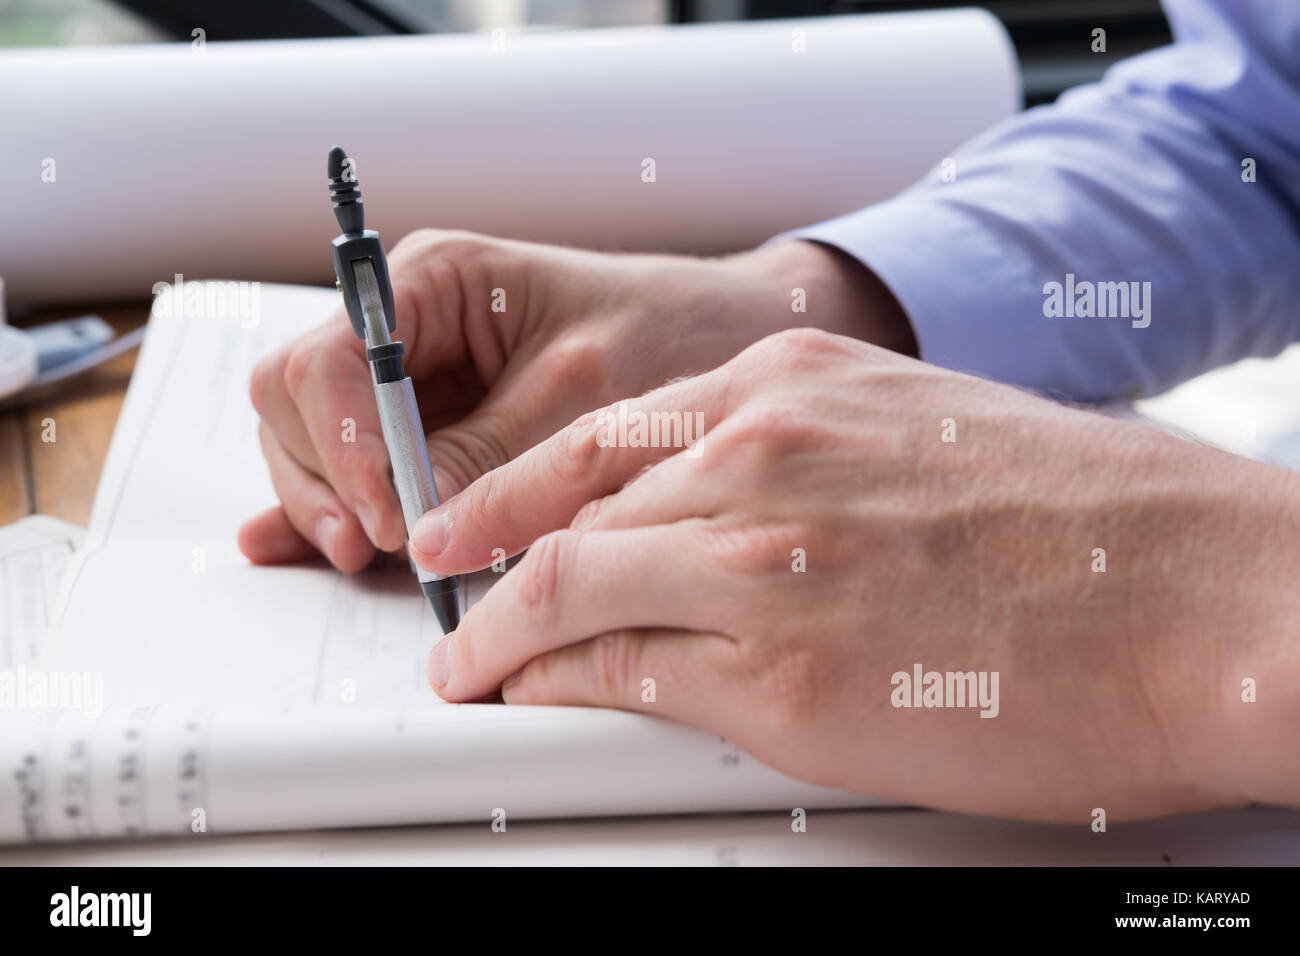 Architect hand holding drawing compass working on construction plan architect hand holding drawing compass working on construction plan at office engineer inspect blueprint with divider at workplace young man sketchi malvernweather Image collections